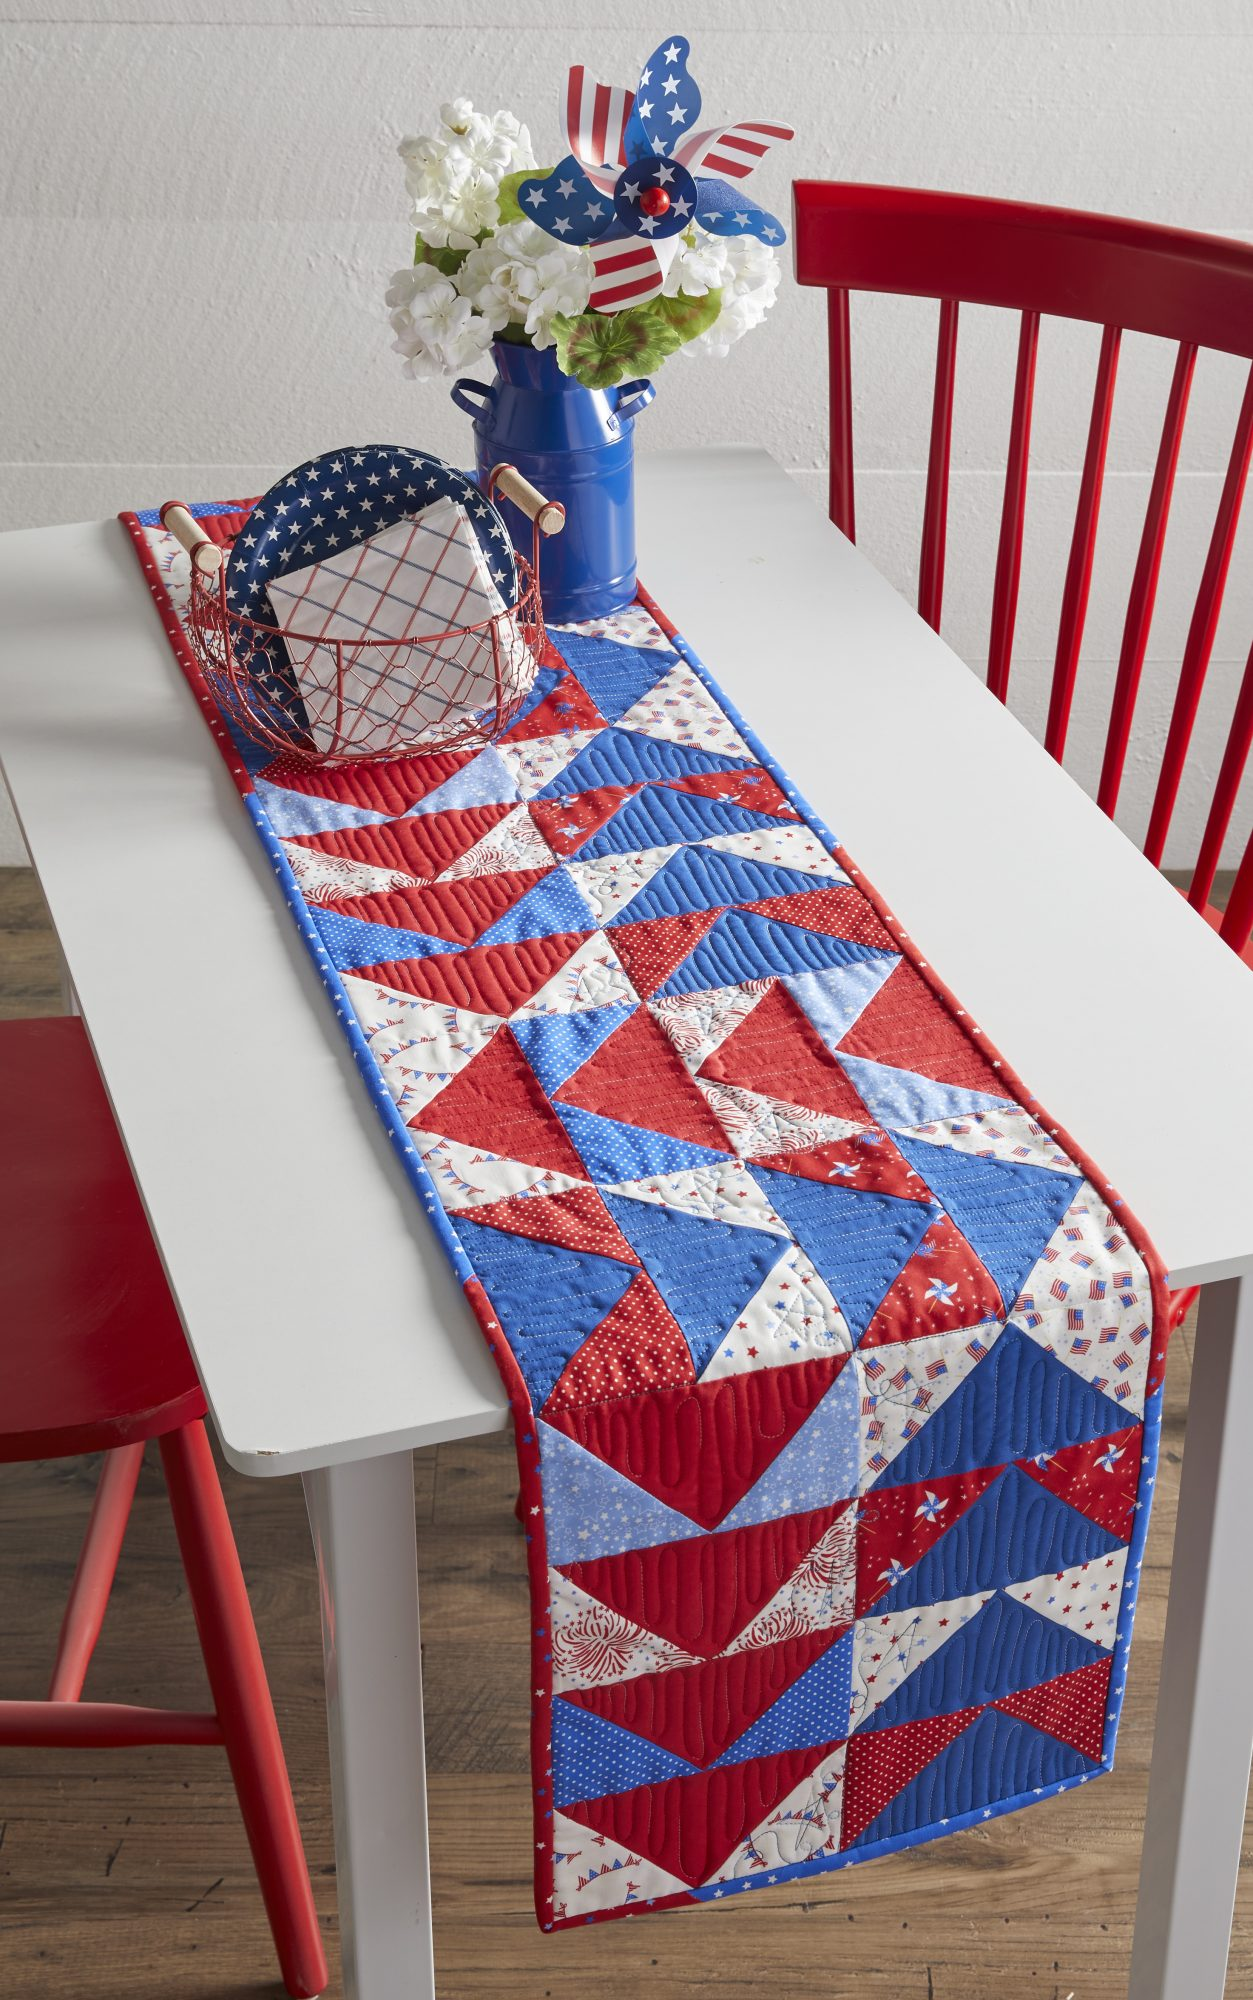 Flying geese table runner made with red, white, and blue fabrics on table with patriotic accessories